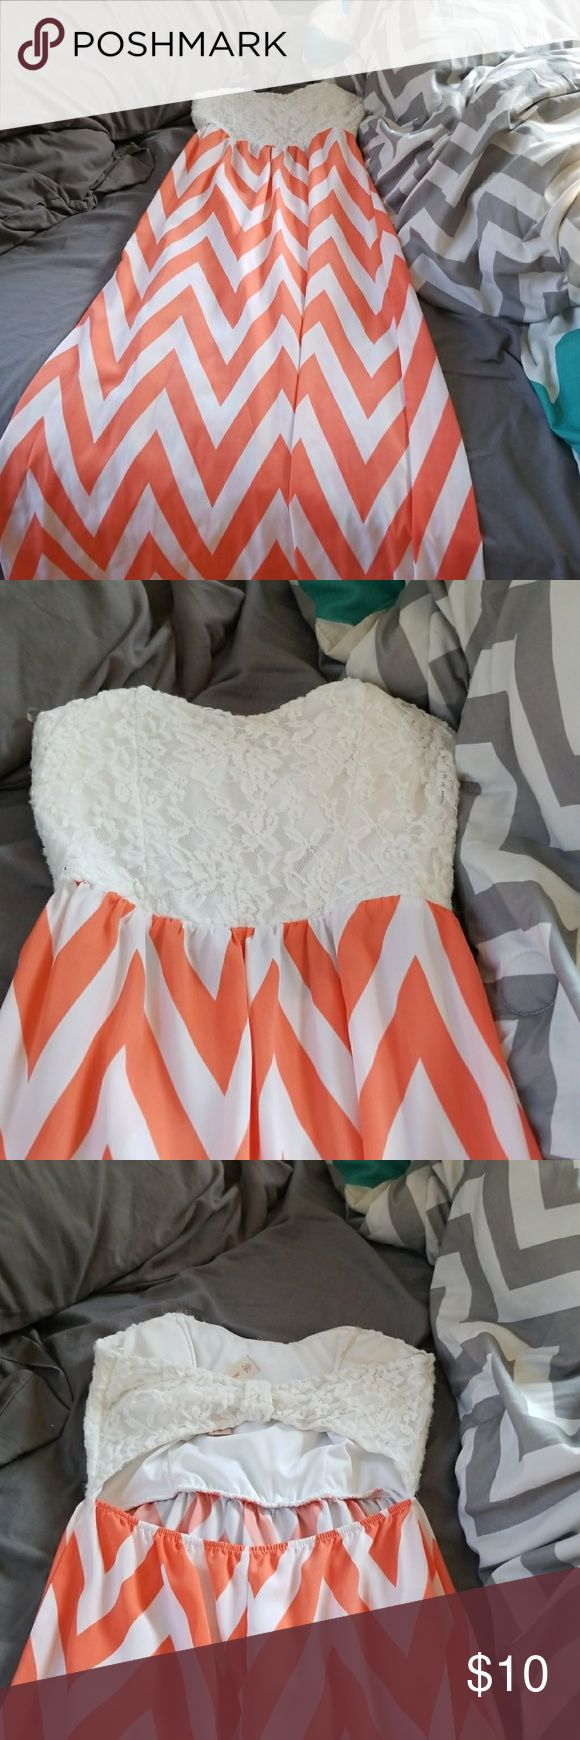 Chevron and lace maxi dress Orange and white chevron printed maxi. Lace bust. Banded and open back. Lightweight and super comfortable. Dresses Maxi